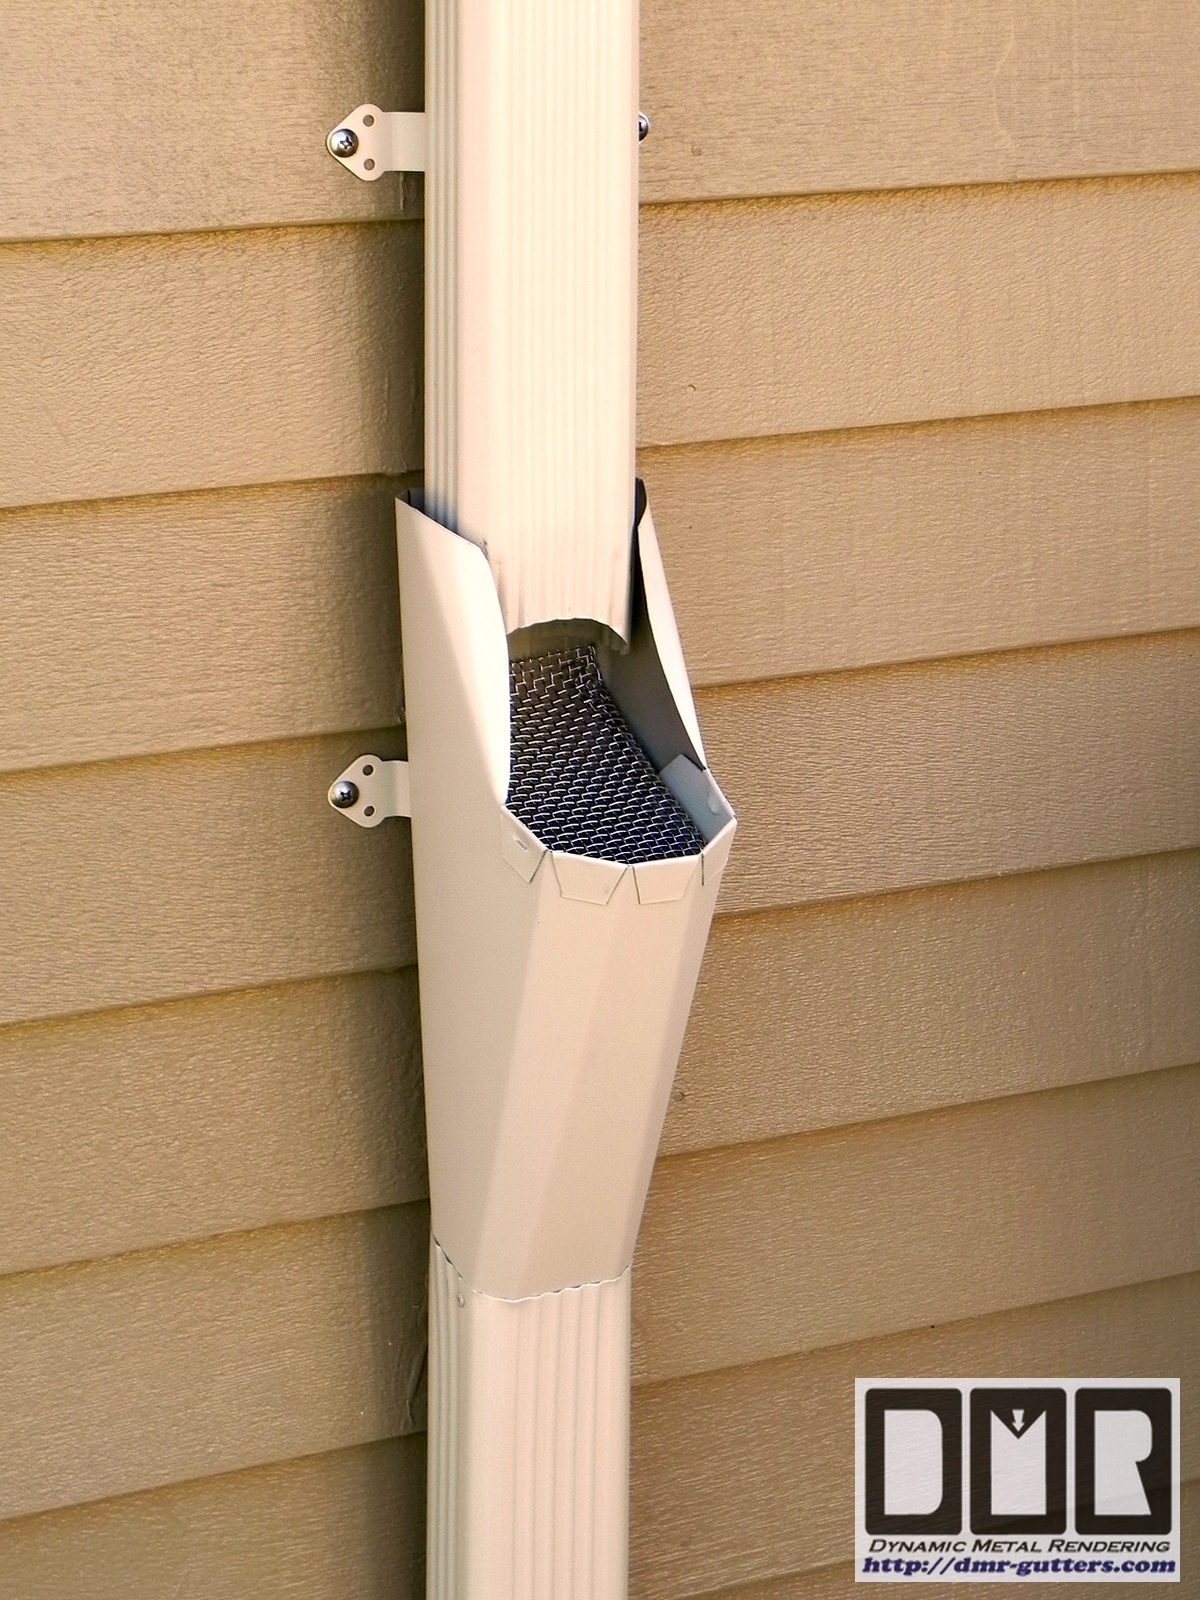 Dmr Gutters Company Profile Page